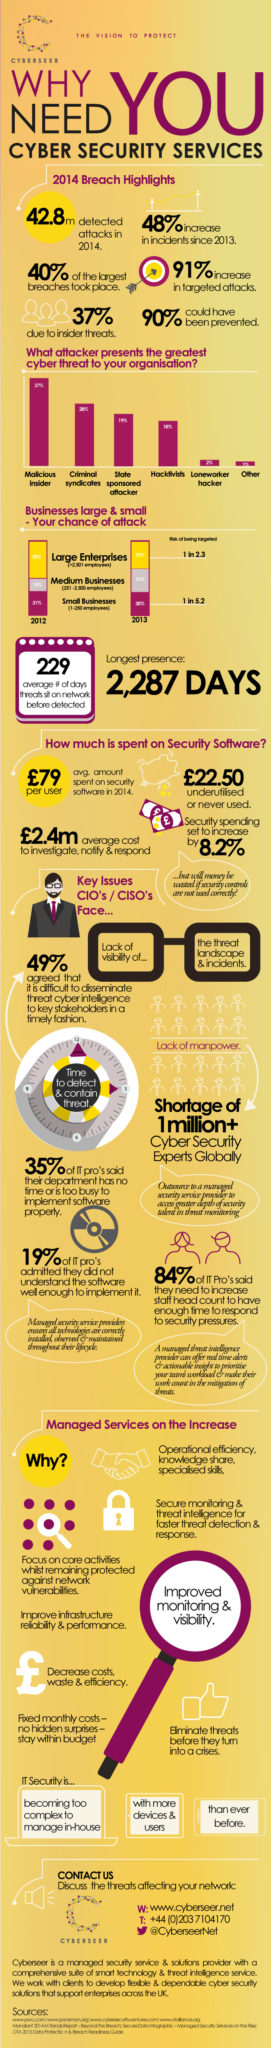 Infographic - why you need cyber security services